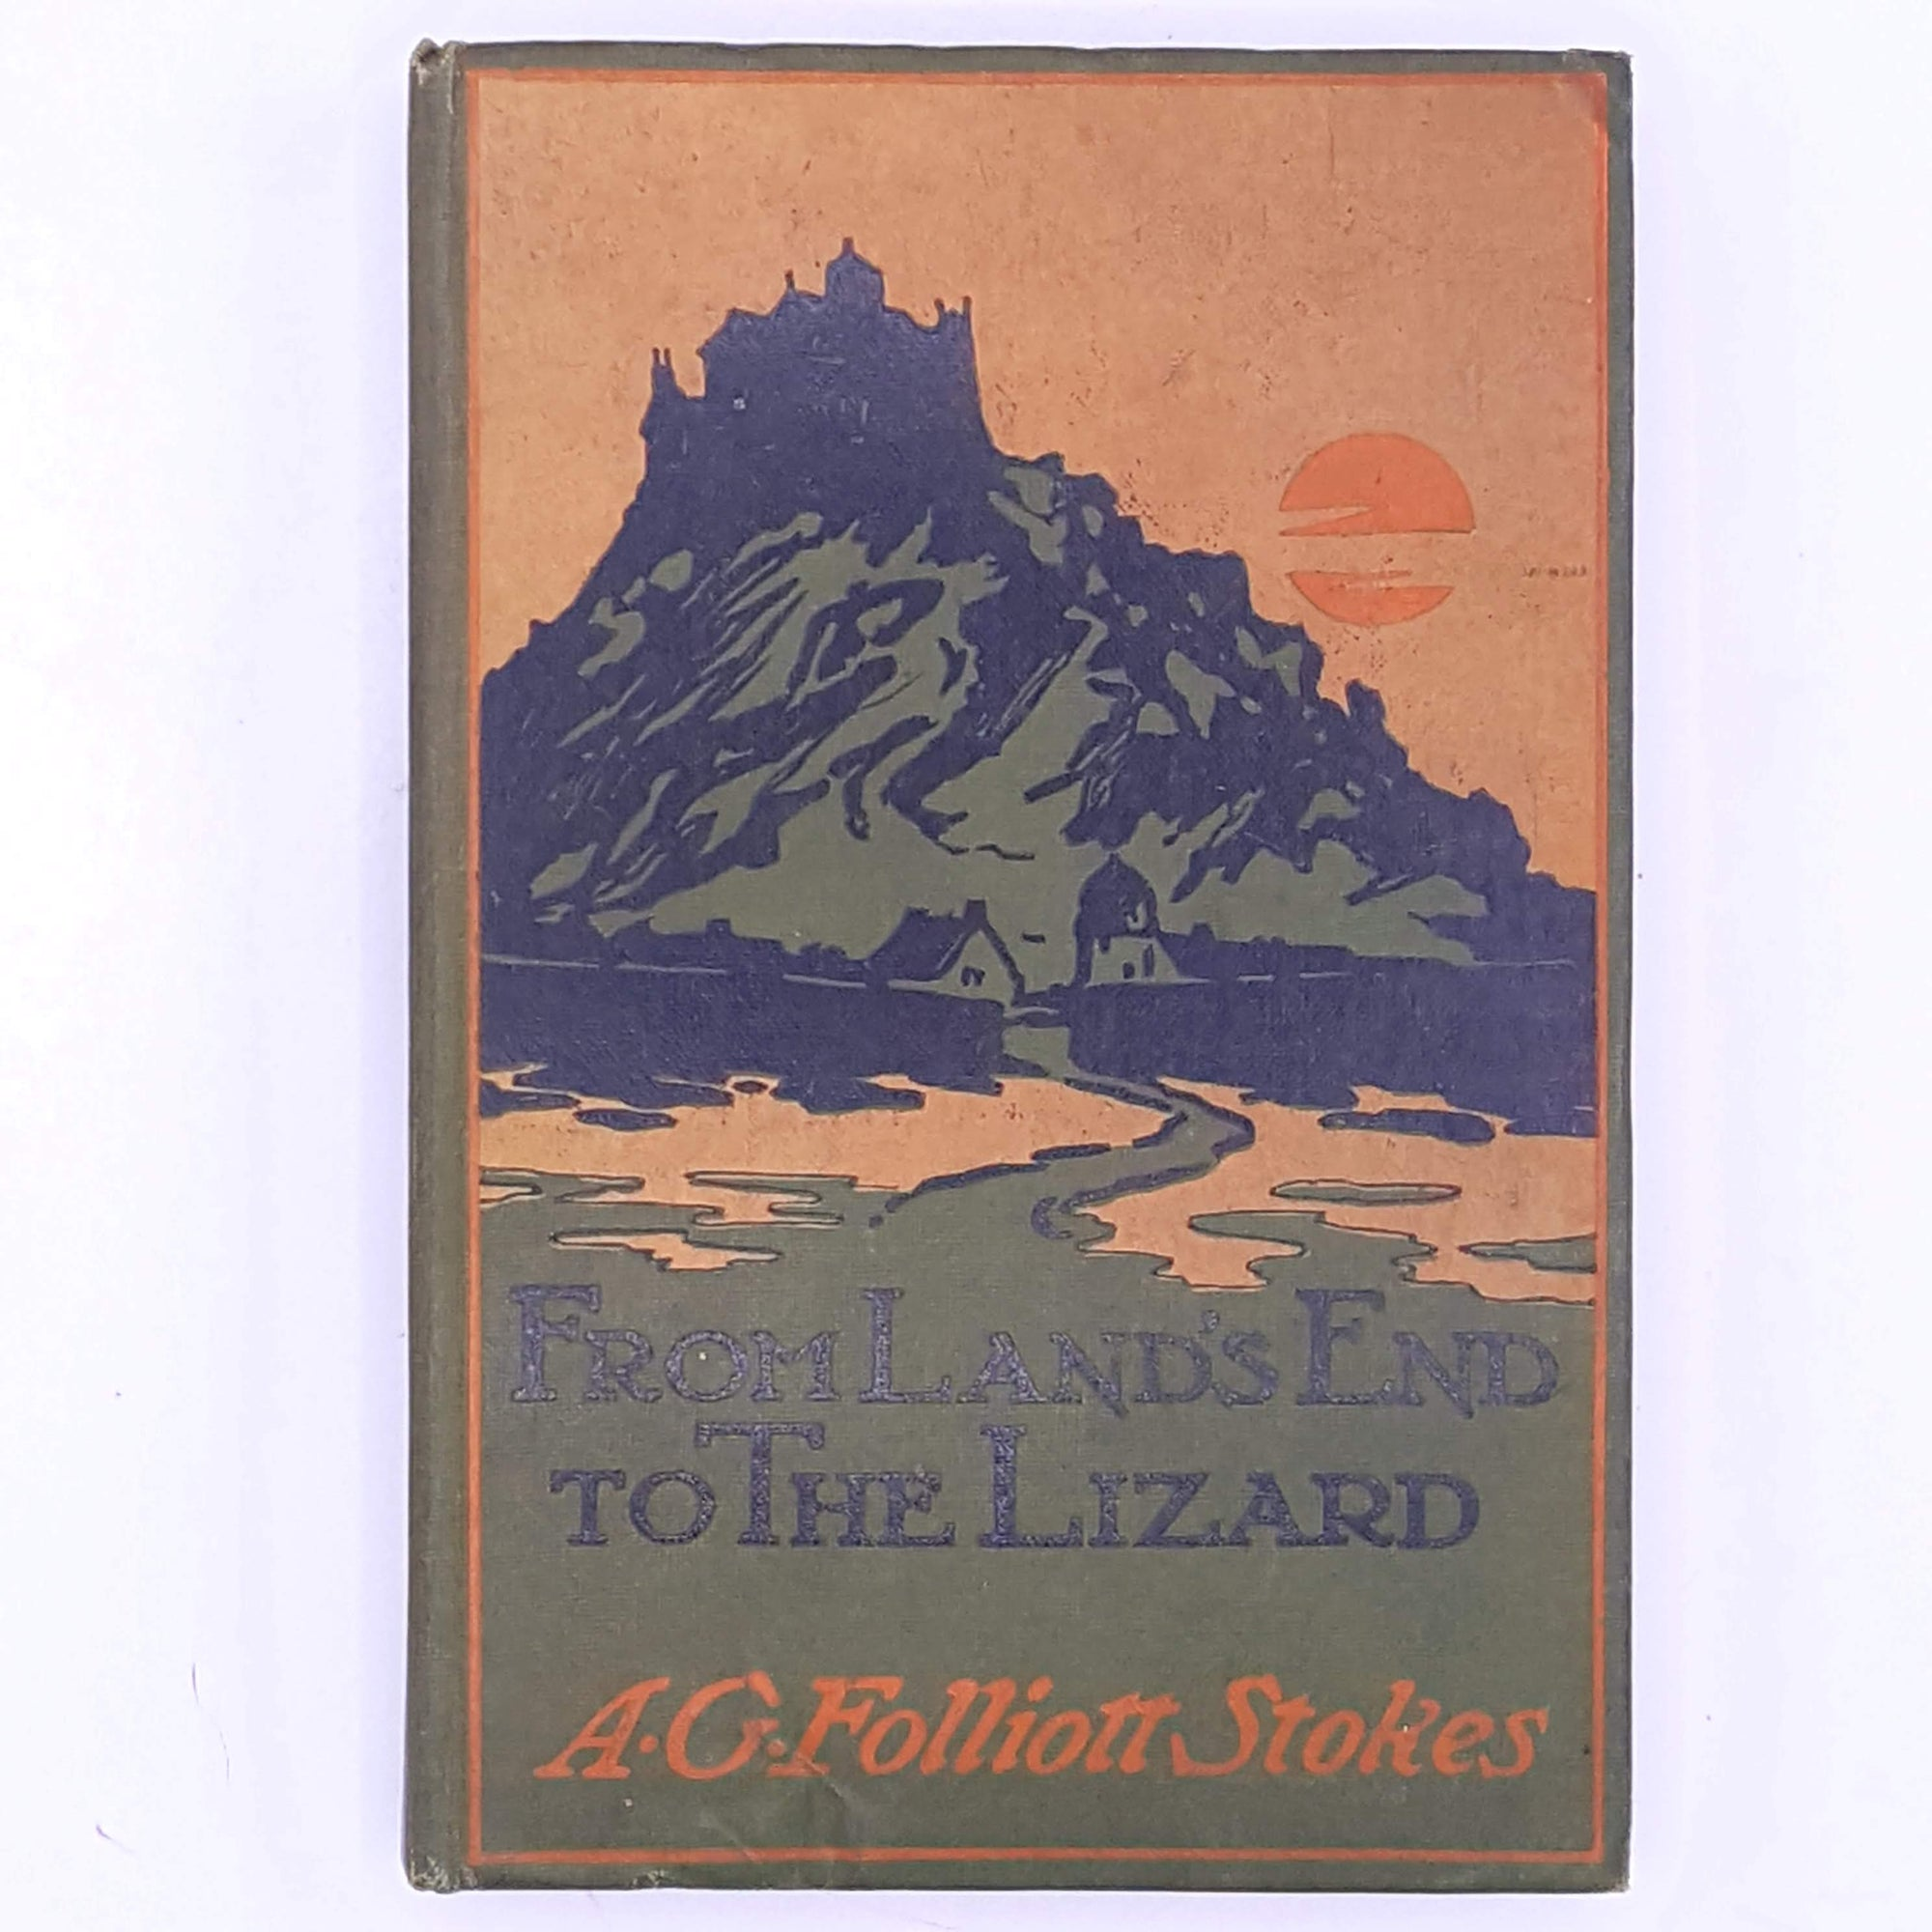 From Land's End To The Lizard, A.G. Folliott Stokes, 1909